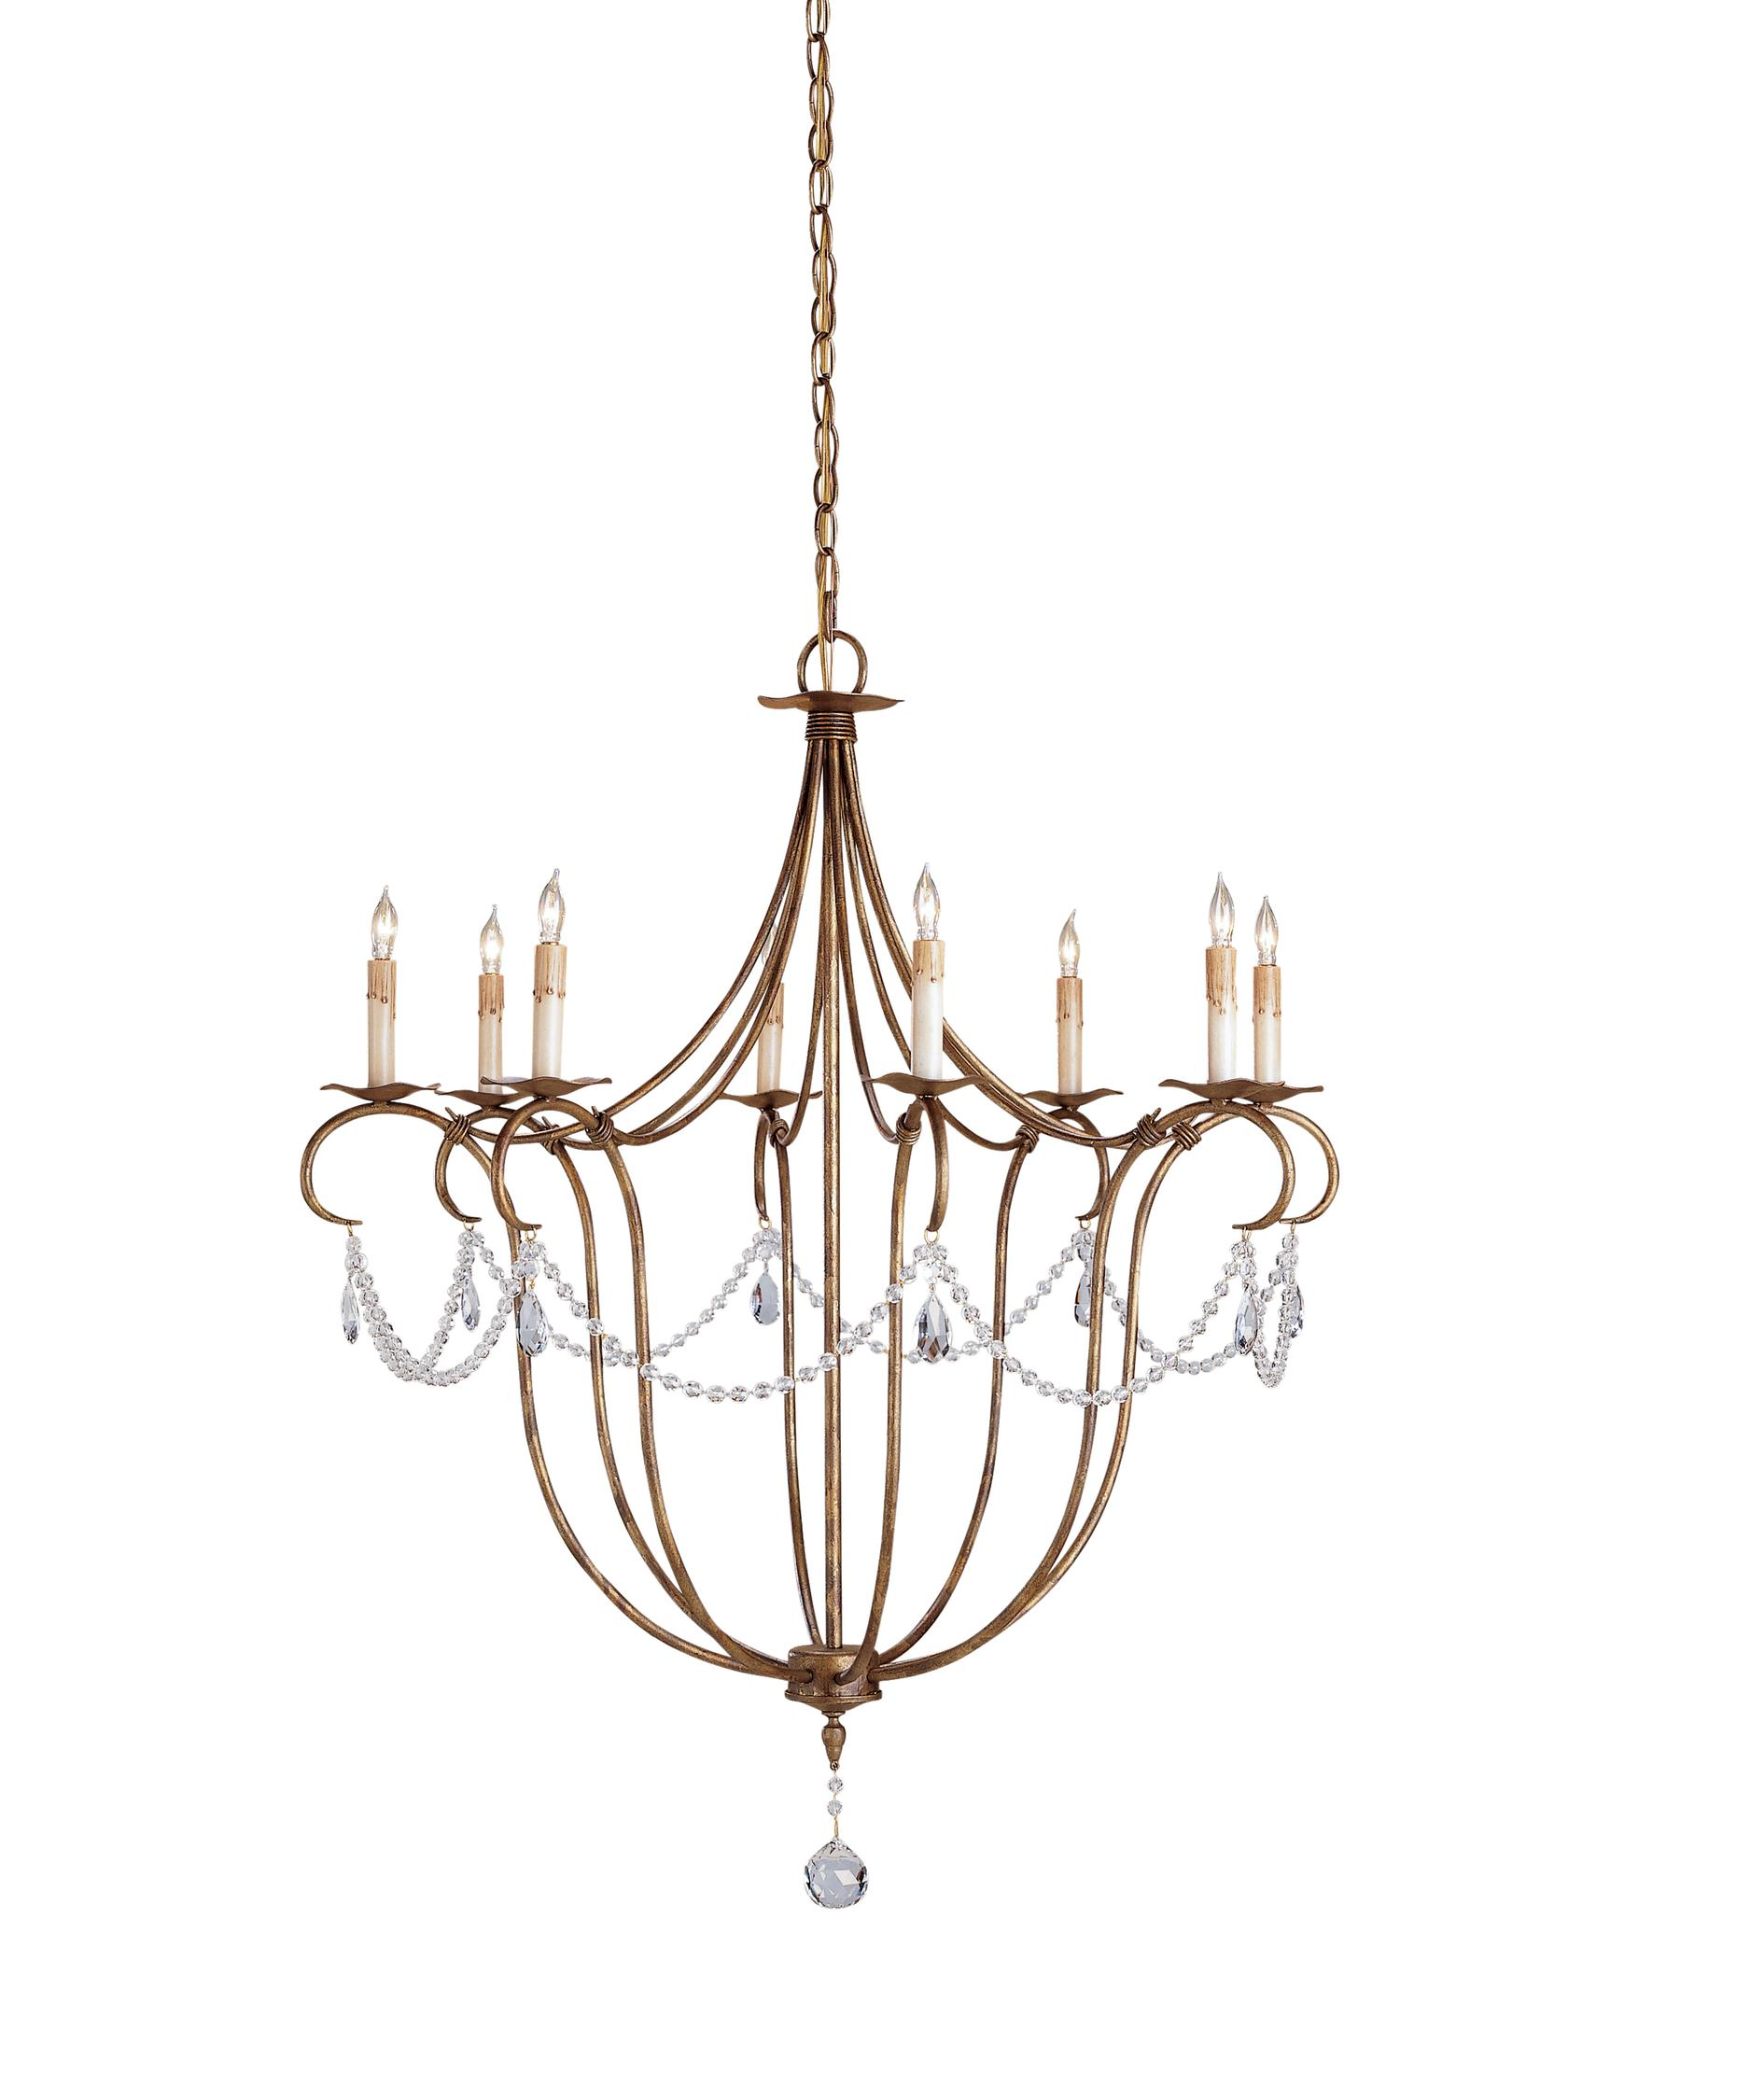 Currey And Company 9881 Crystal Lights 31 Inch Chandelier